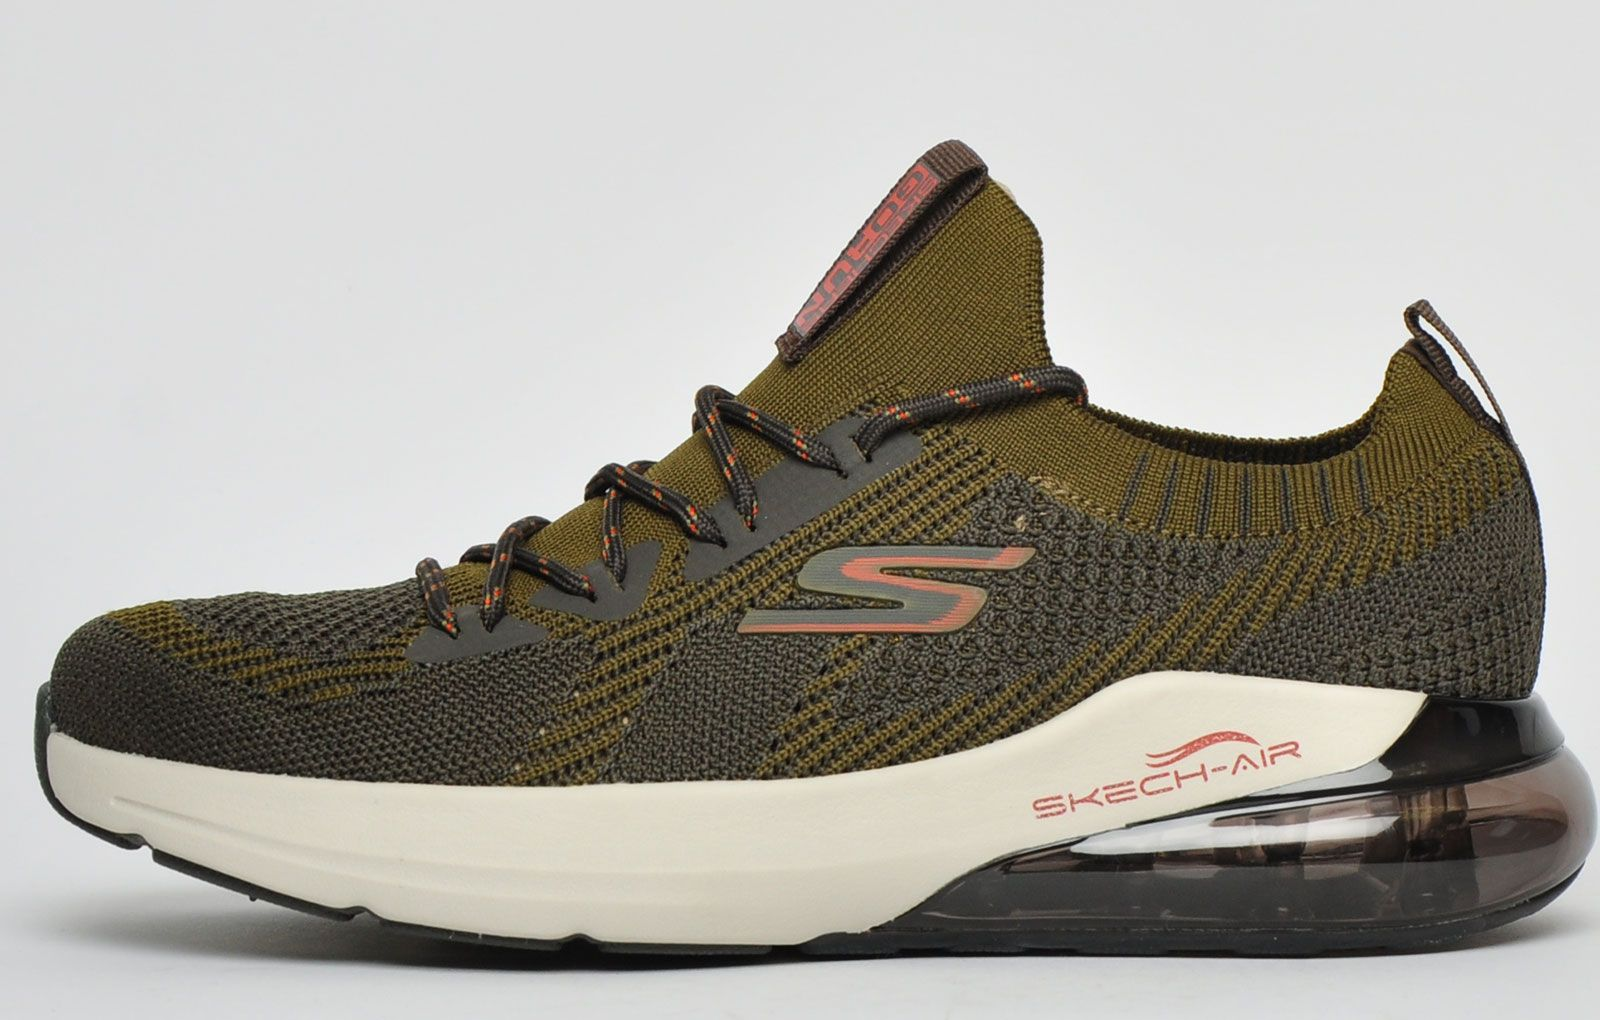 Skechers Go Run Air Stratus Mens